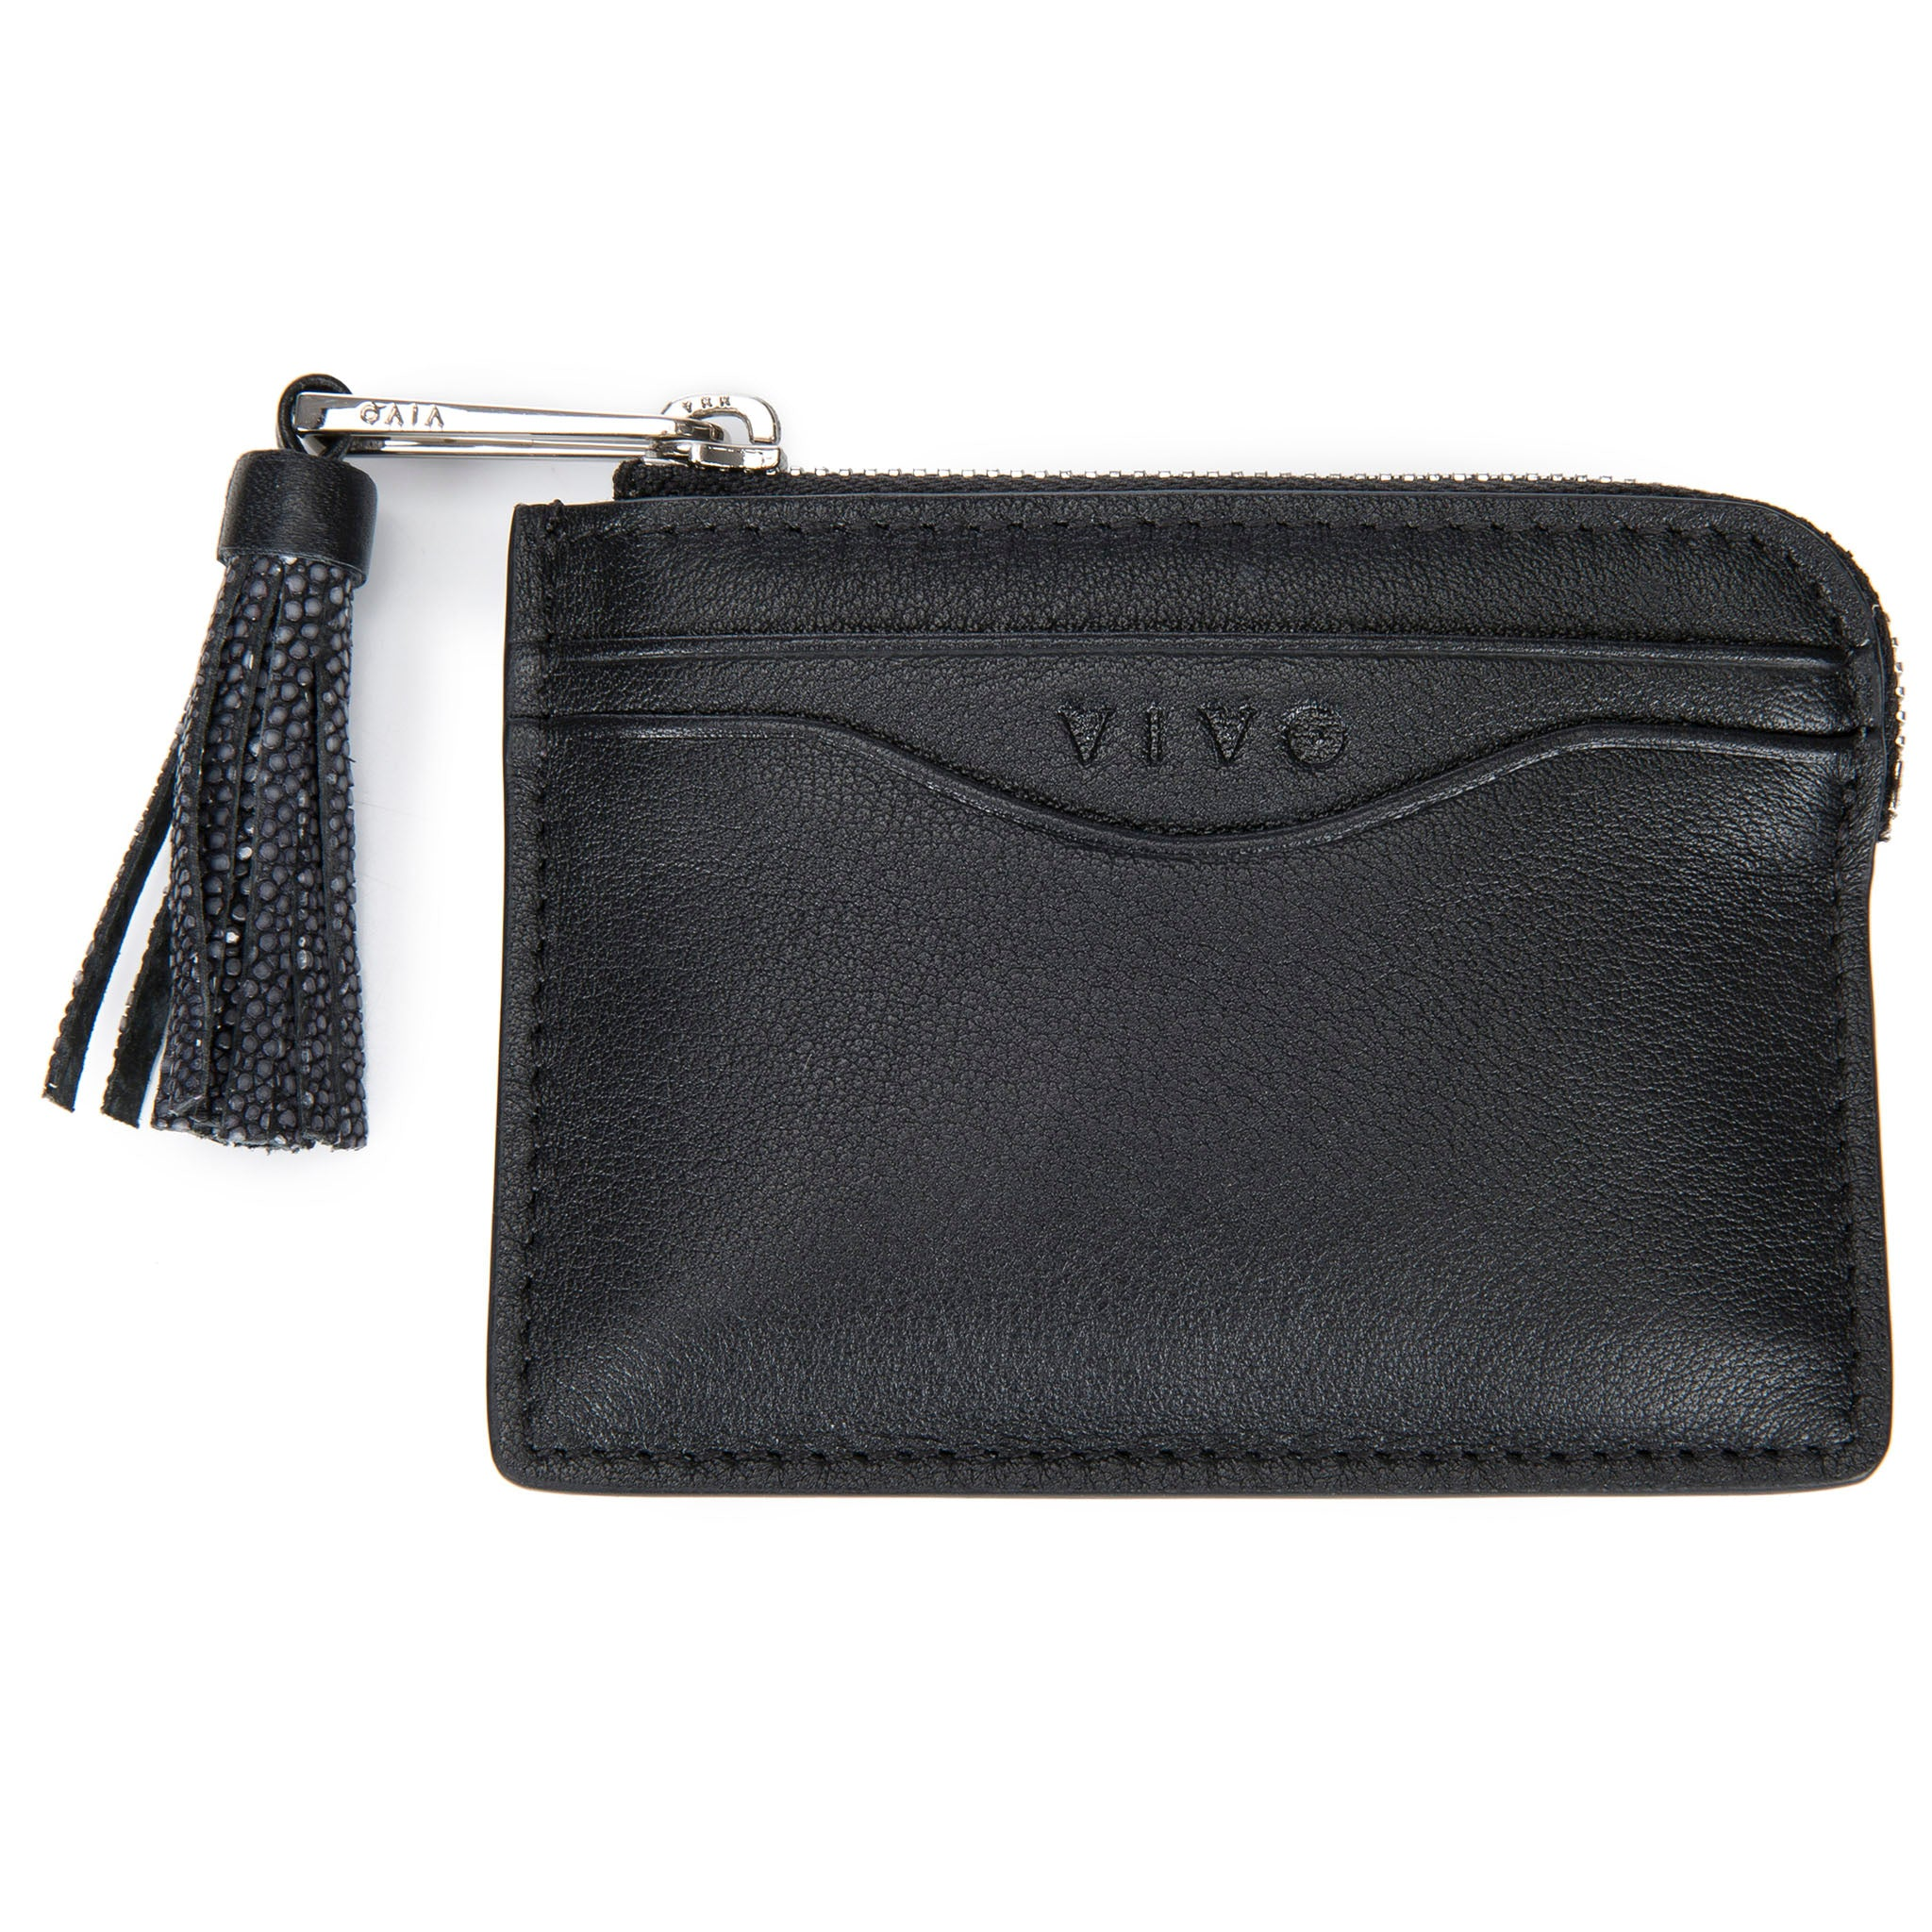 Black Leather Zipper Card Or Coin Case With Shagreen Tassel Pull Front View Avery - Vivo Direct